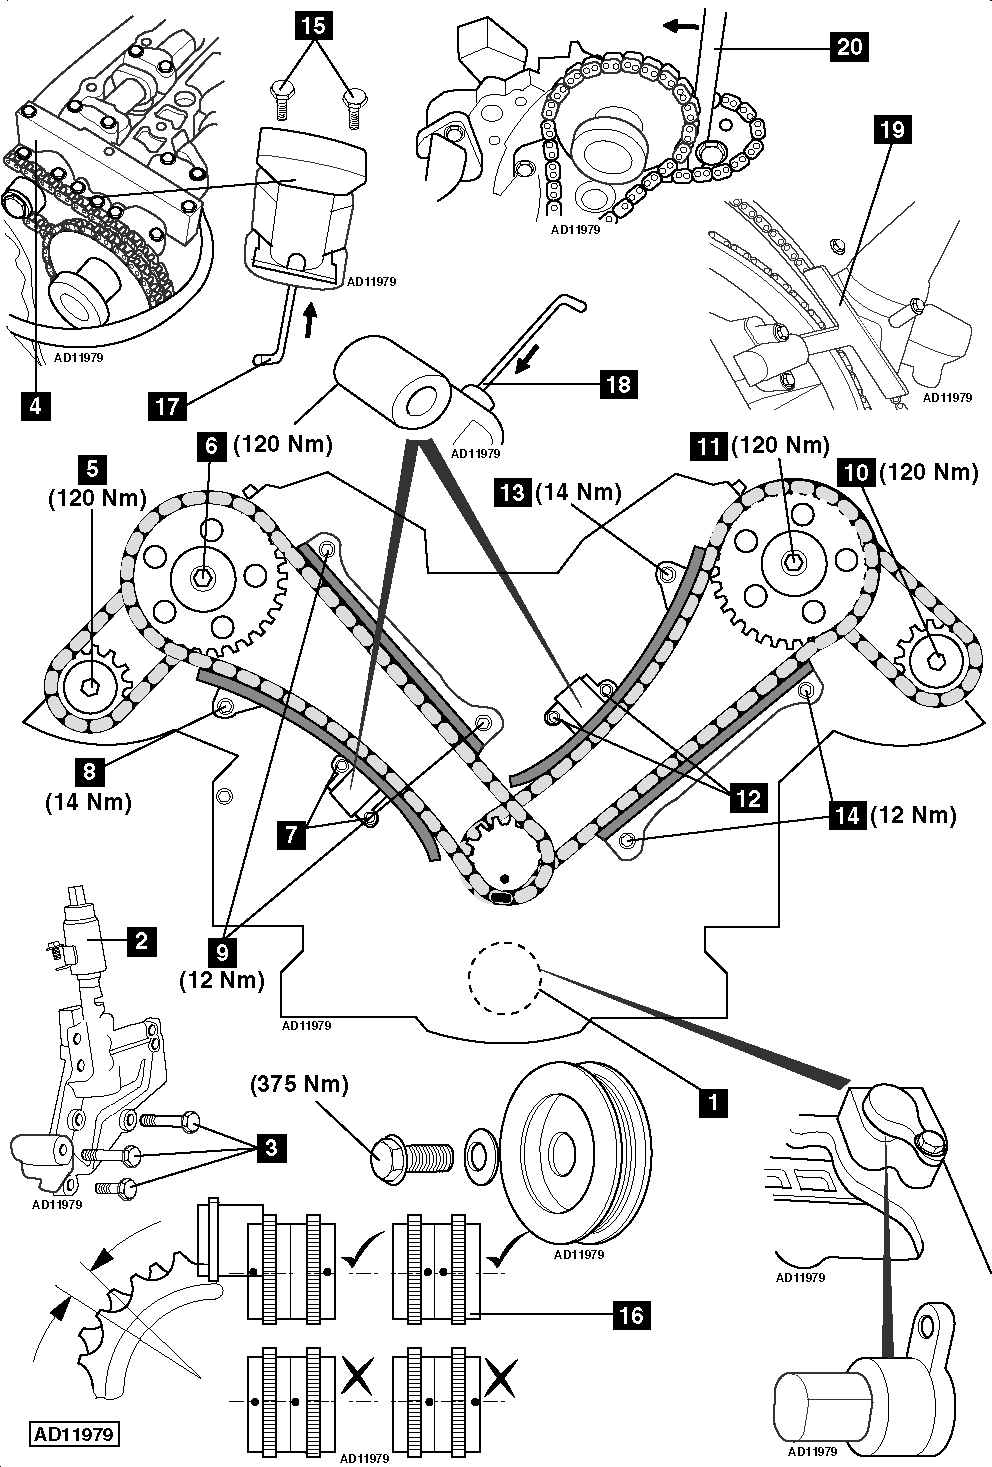 1998 Jaguar Engine Diagram Oil Pump 1999 Dodge Ram Turn Signal Wiring Diagram 5pin Yenpancane Jeanjaures37 Fr